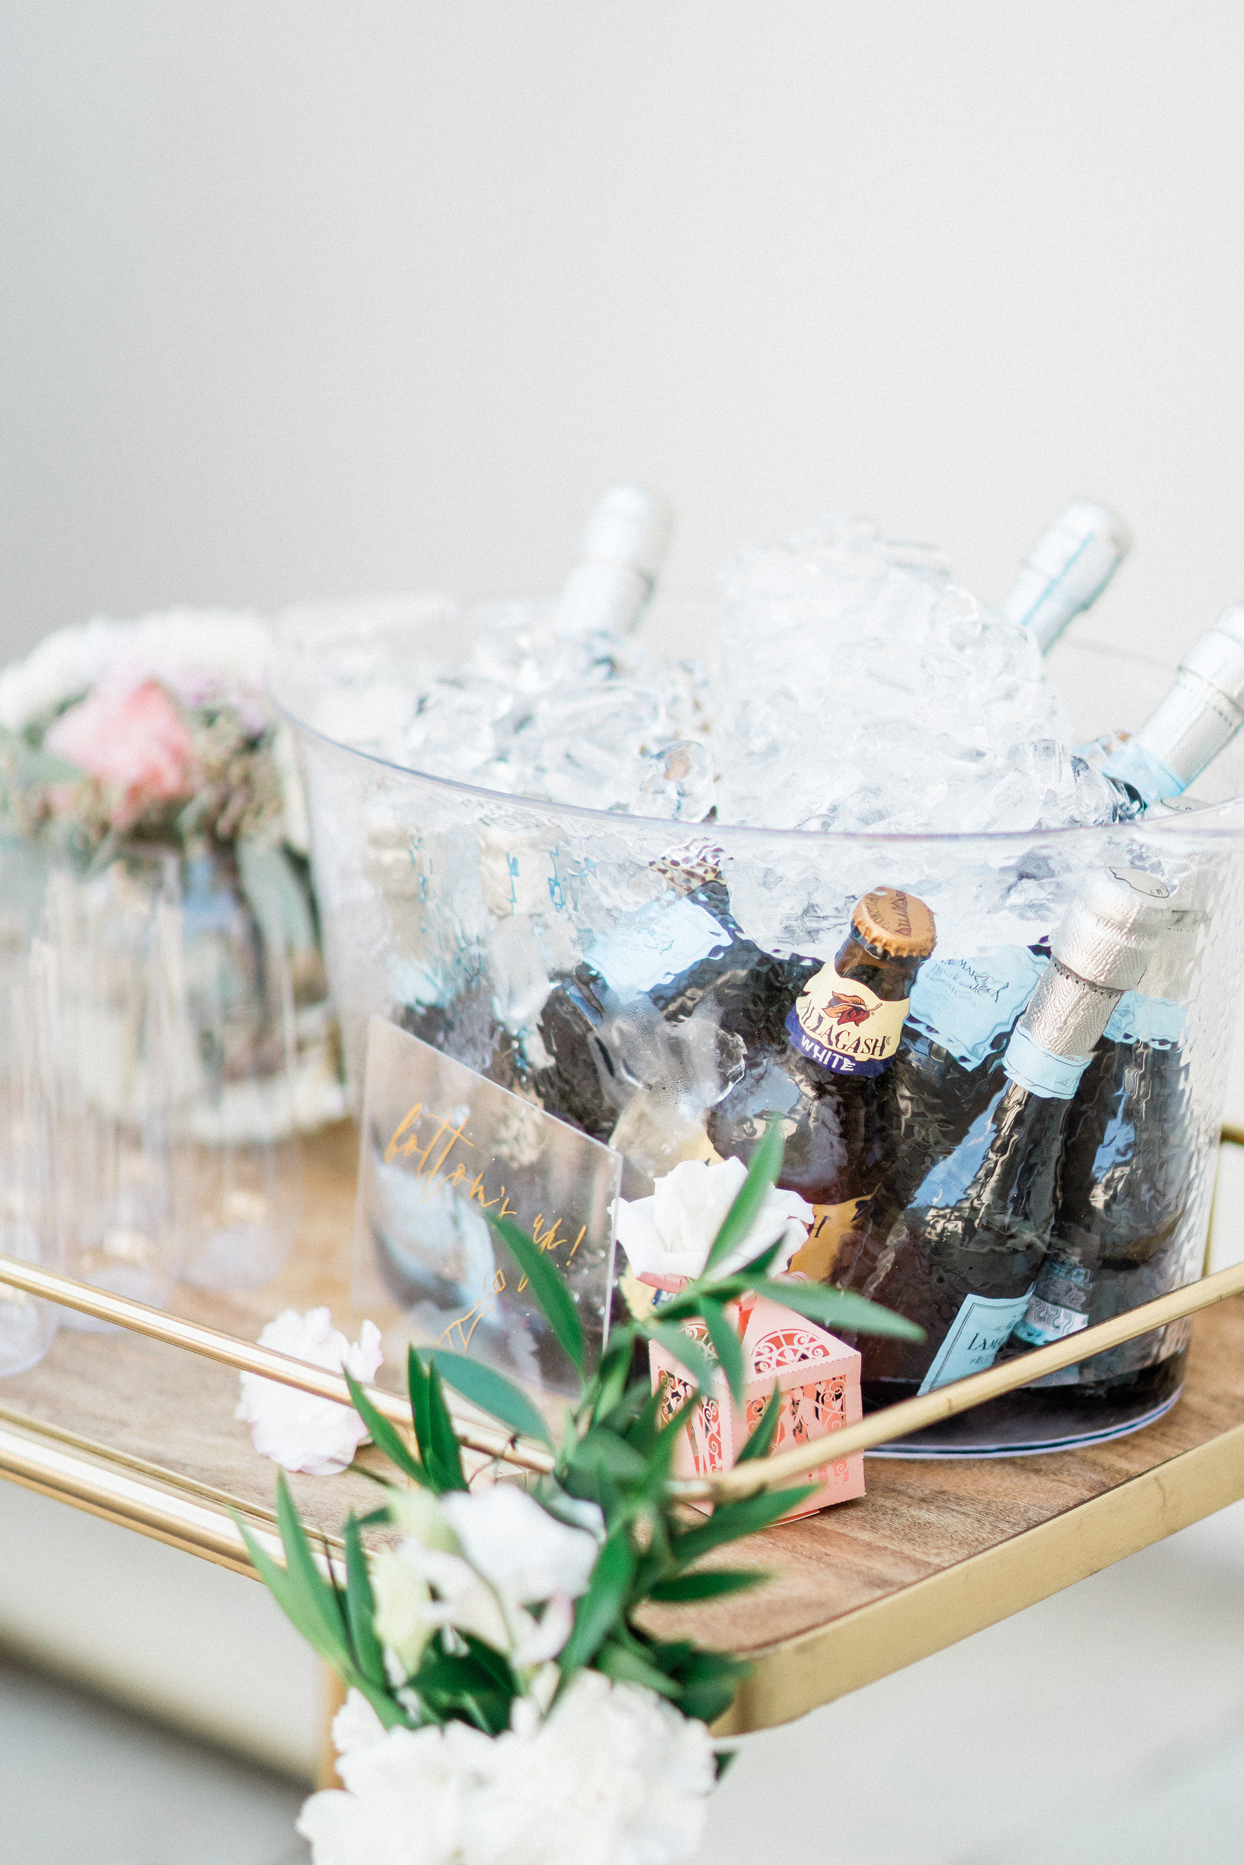 Bucket of ice with champagne bottles